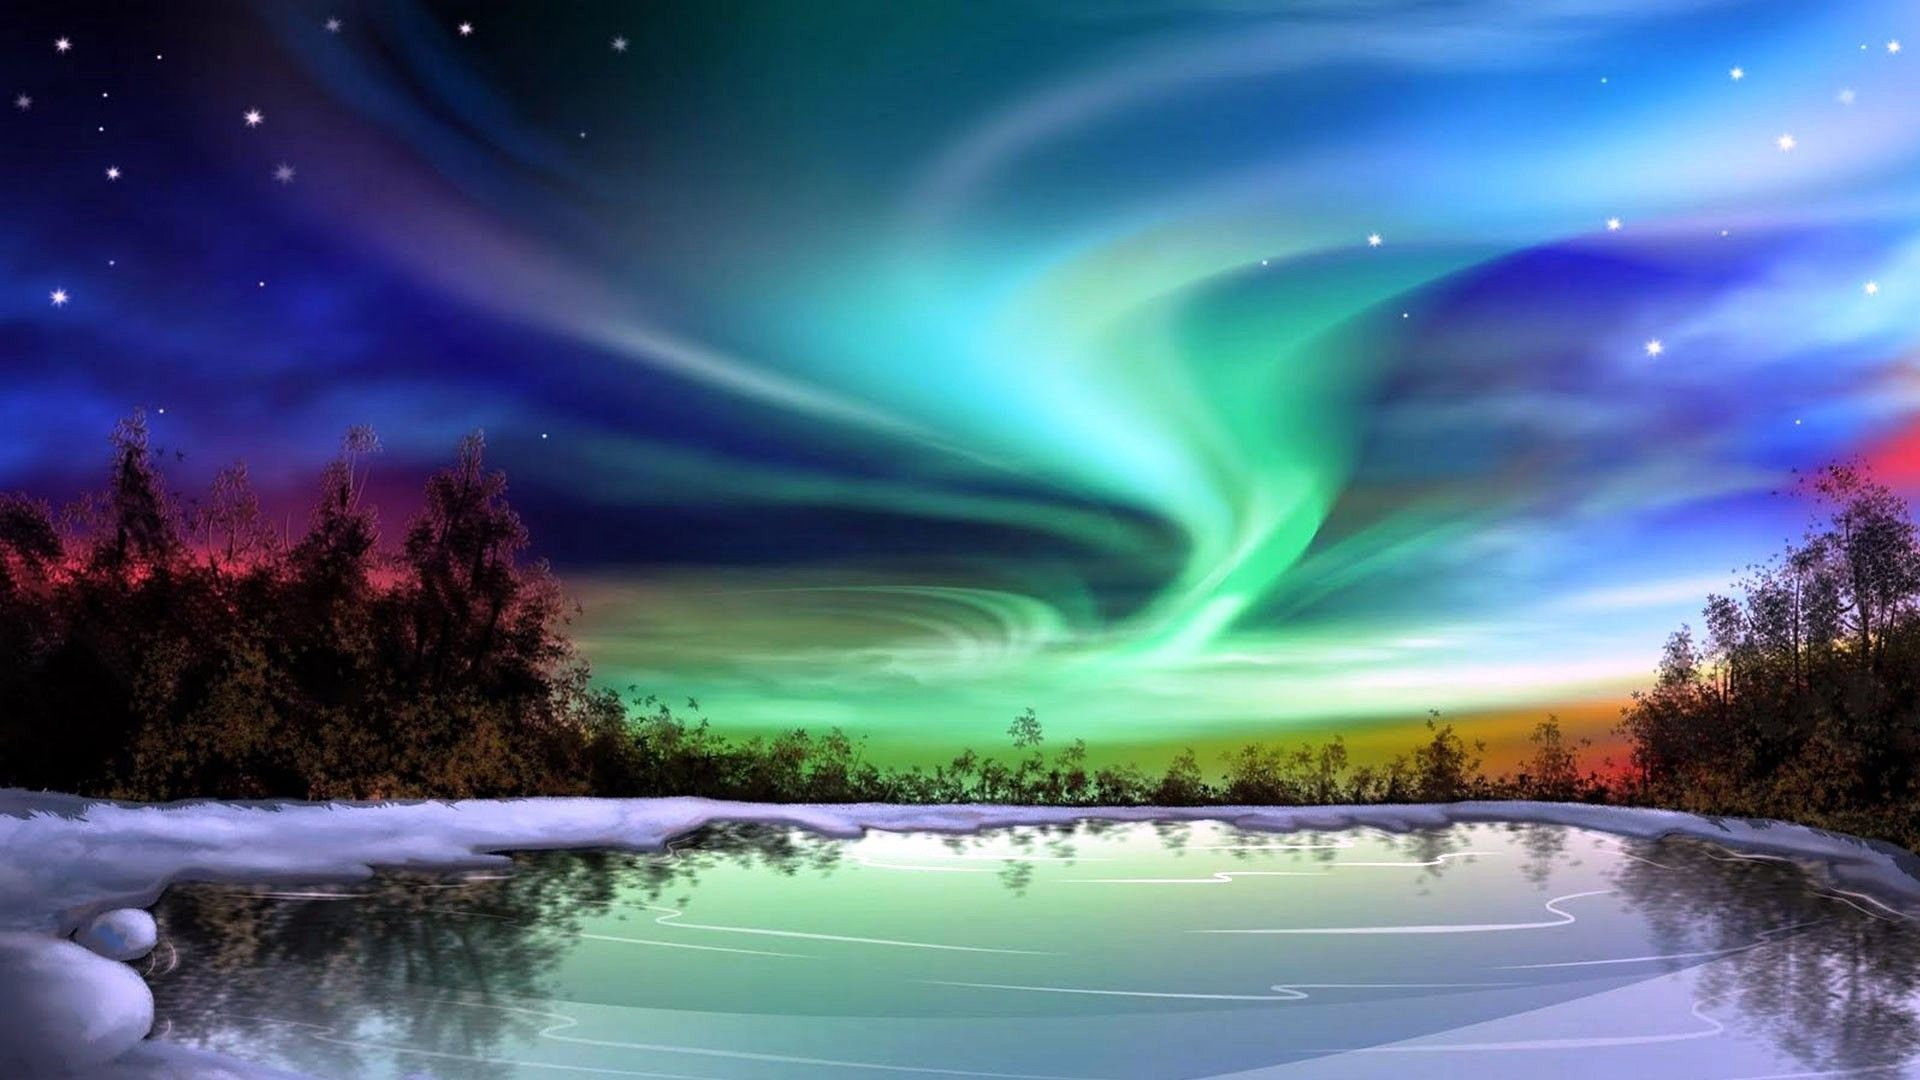 Northern Light Wallpaper Android Apps on Google Play 1280